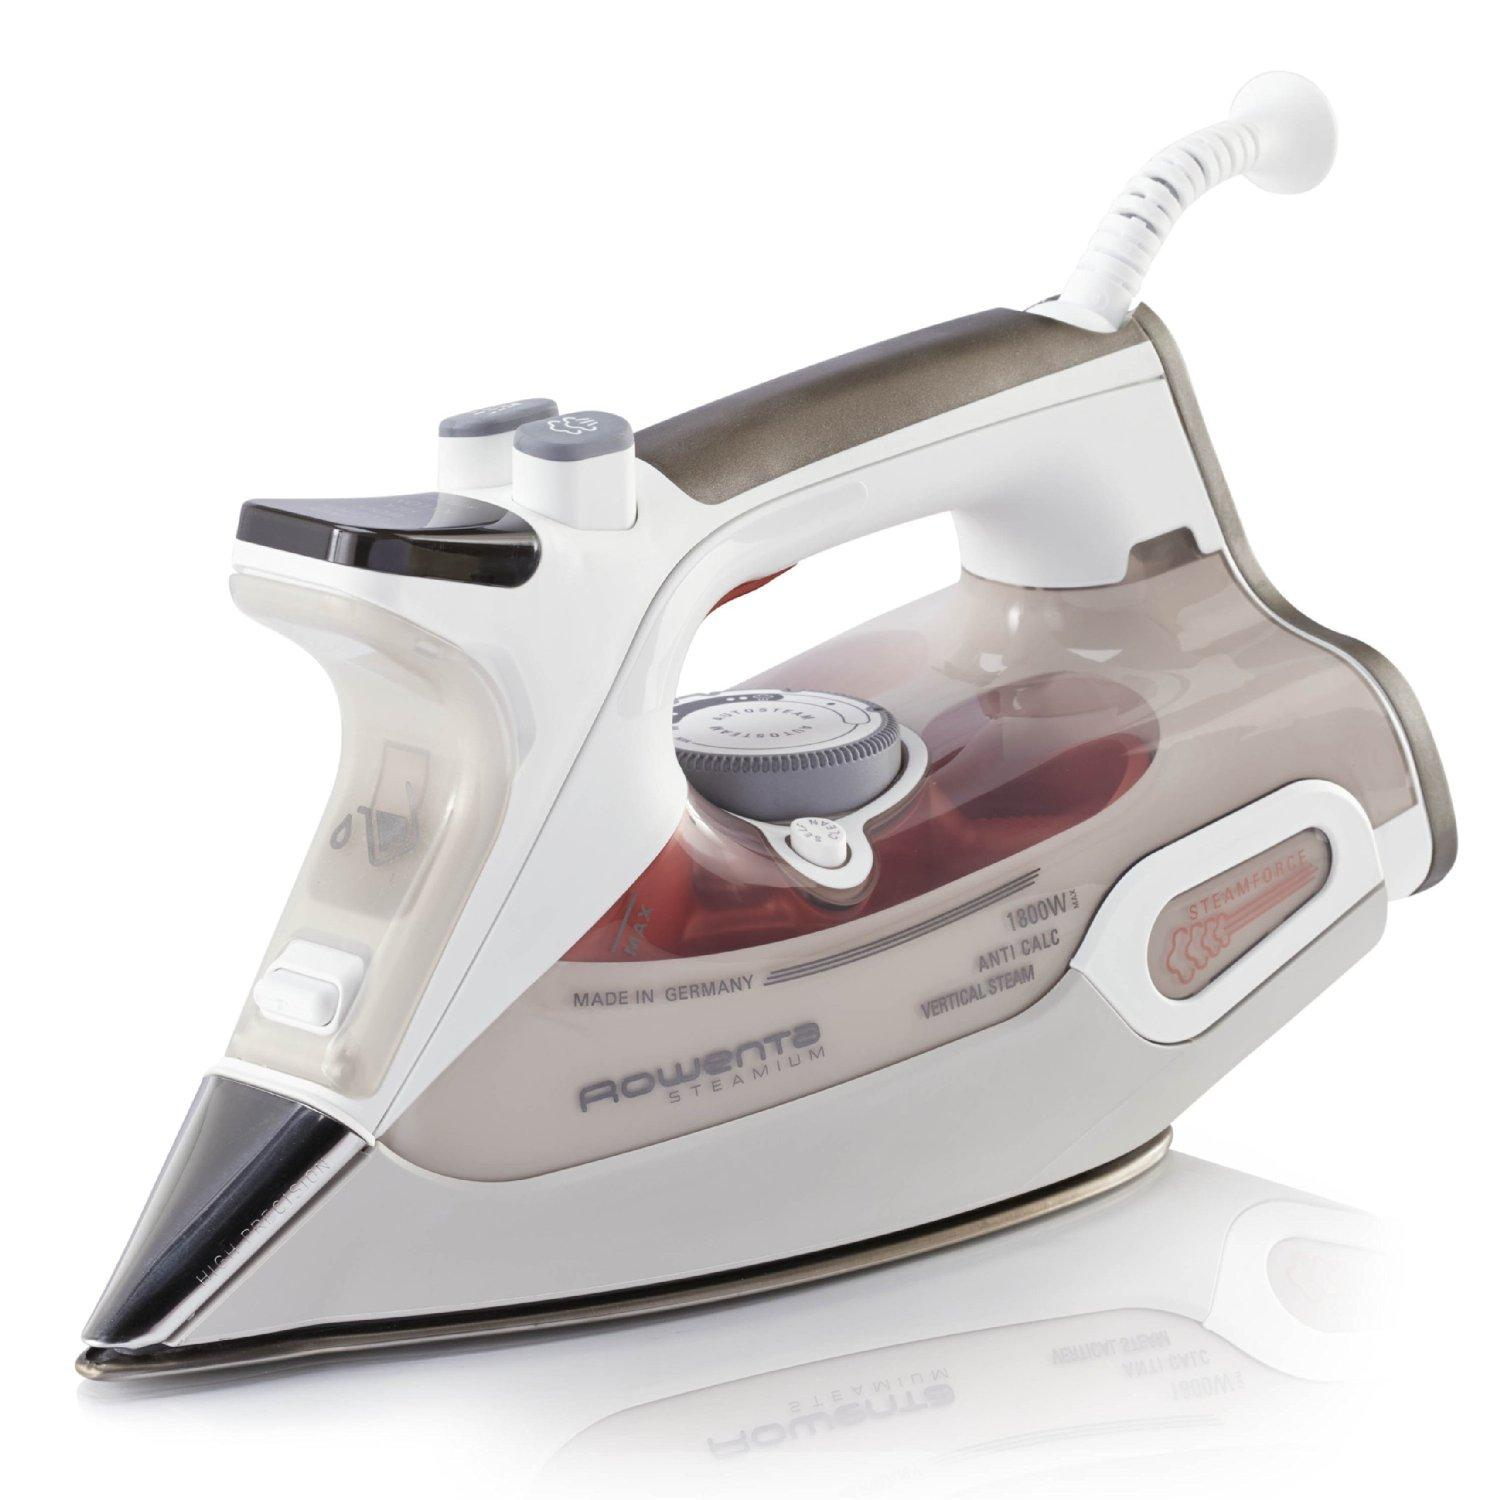 Rowenta DW9081 Steamium Steam Iron Auto Shut off with 400-hole Stainless Steel Soleplate, 1800-Watt